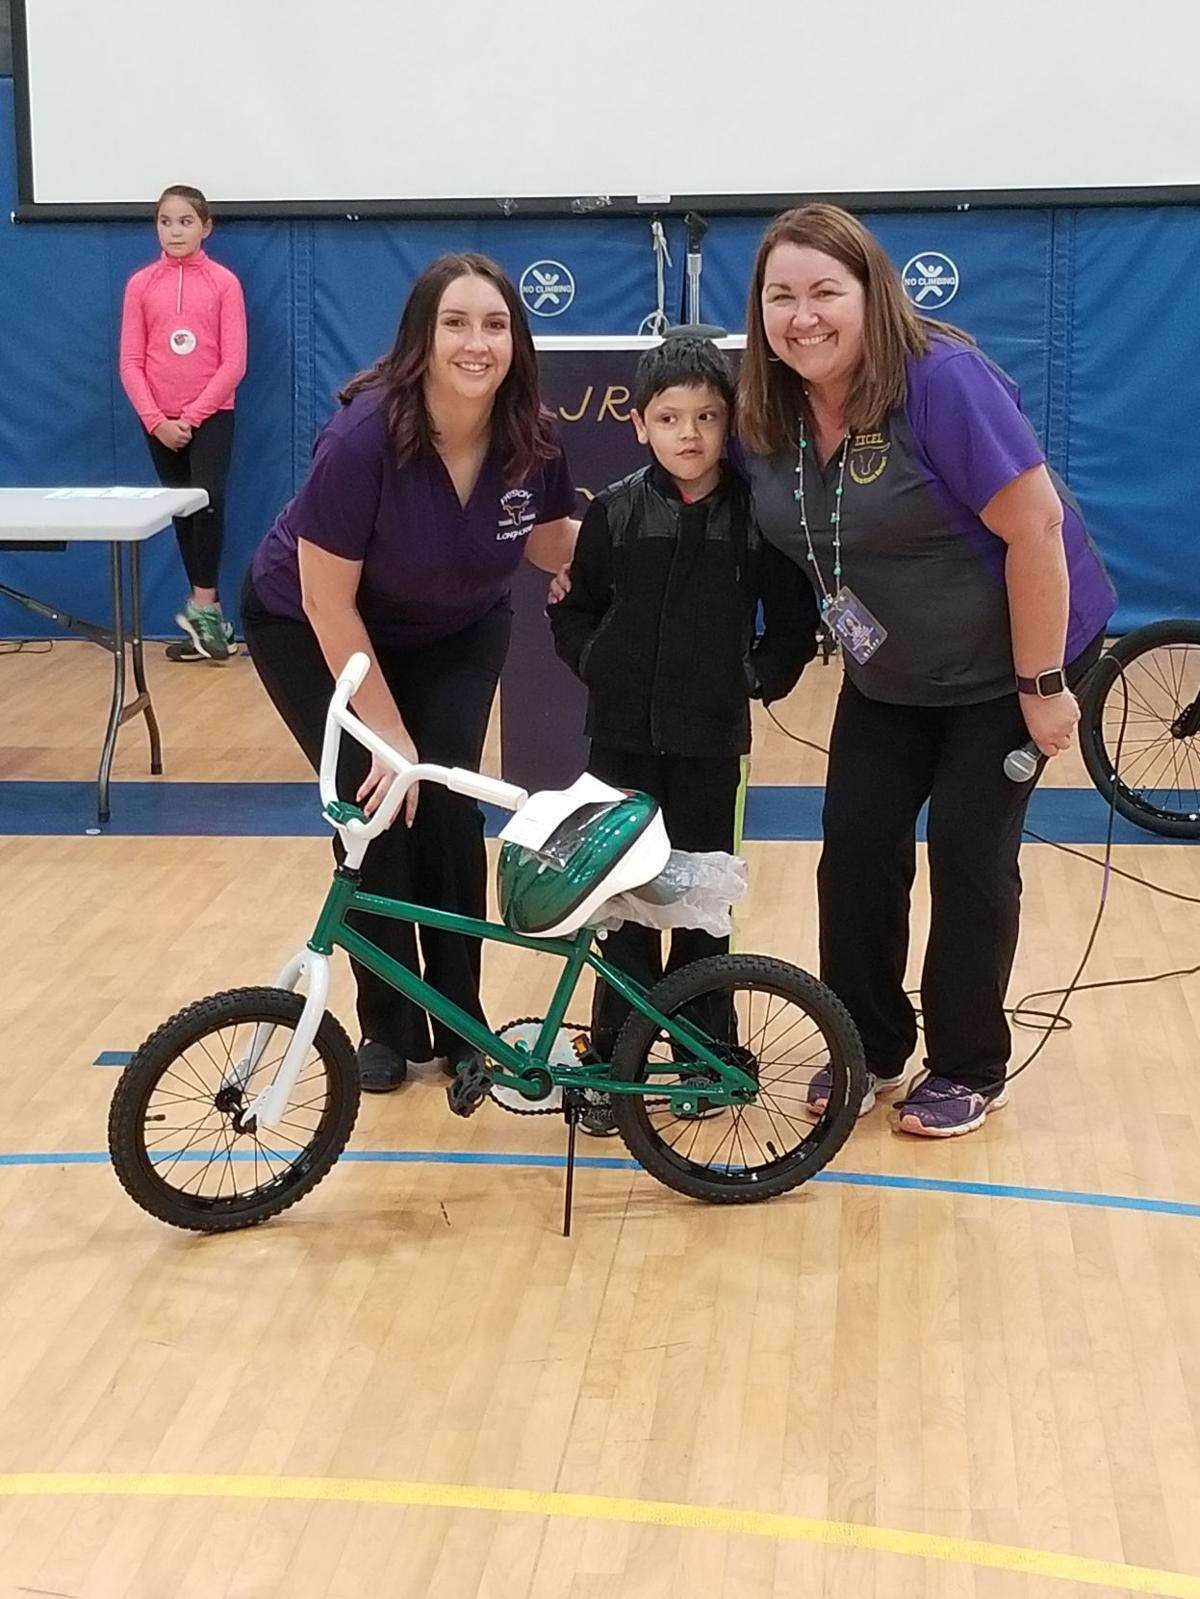 Three lucky JRE students have a new bike for summer - Bentley